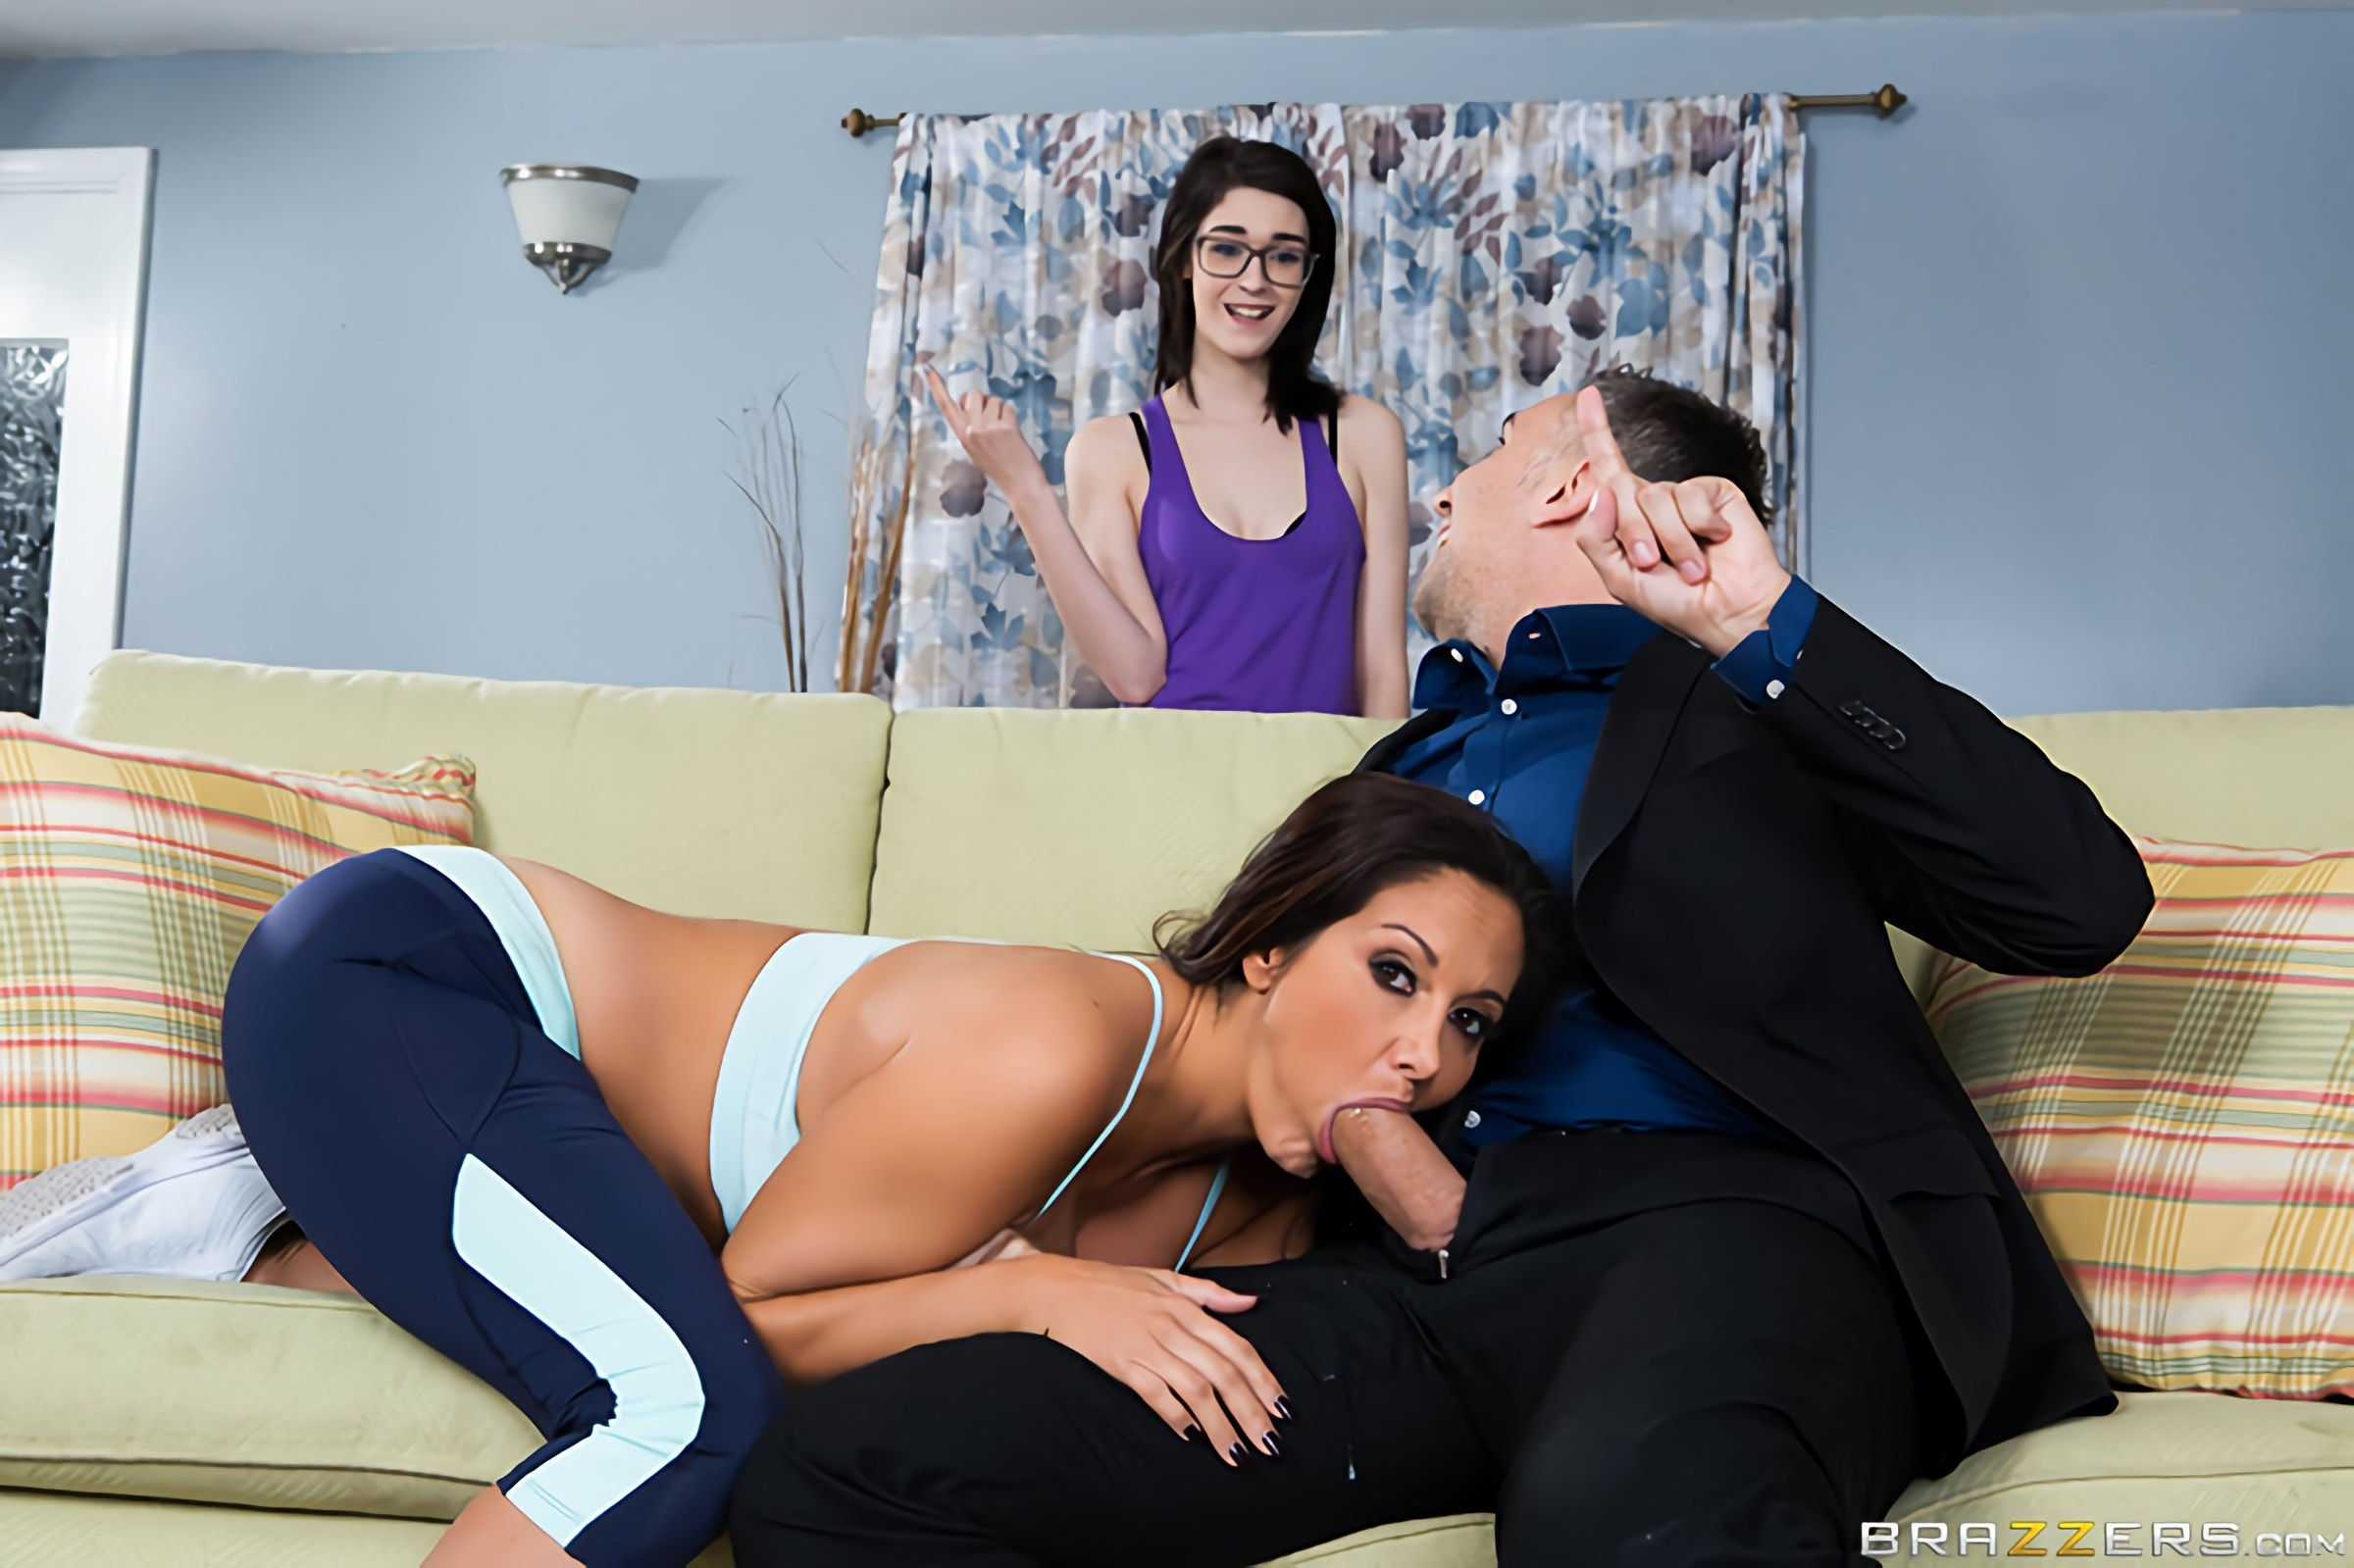 Brazzers 'Stay Away From My Daughter- Part 2' starring Ava Addams (Photo 2)